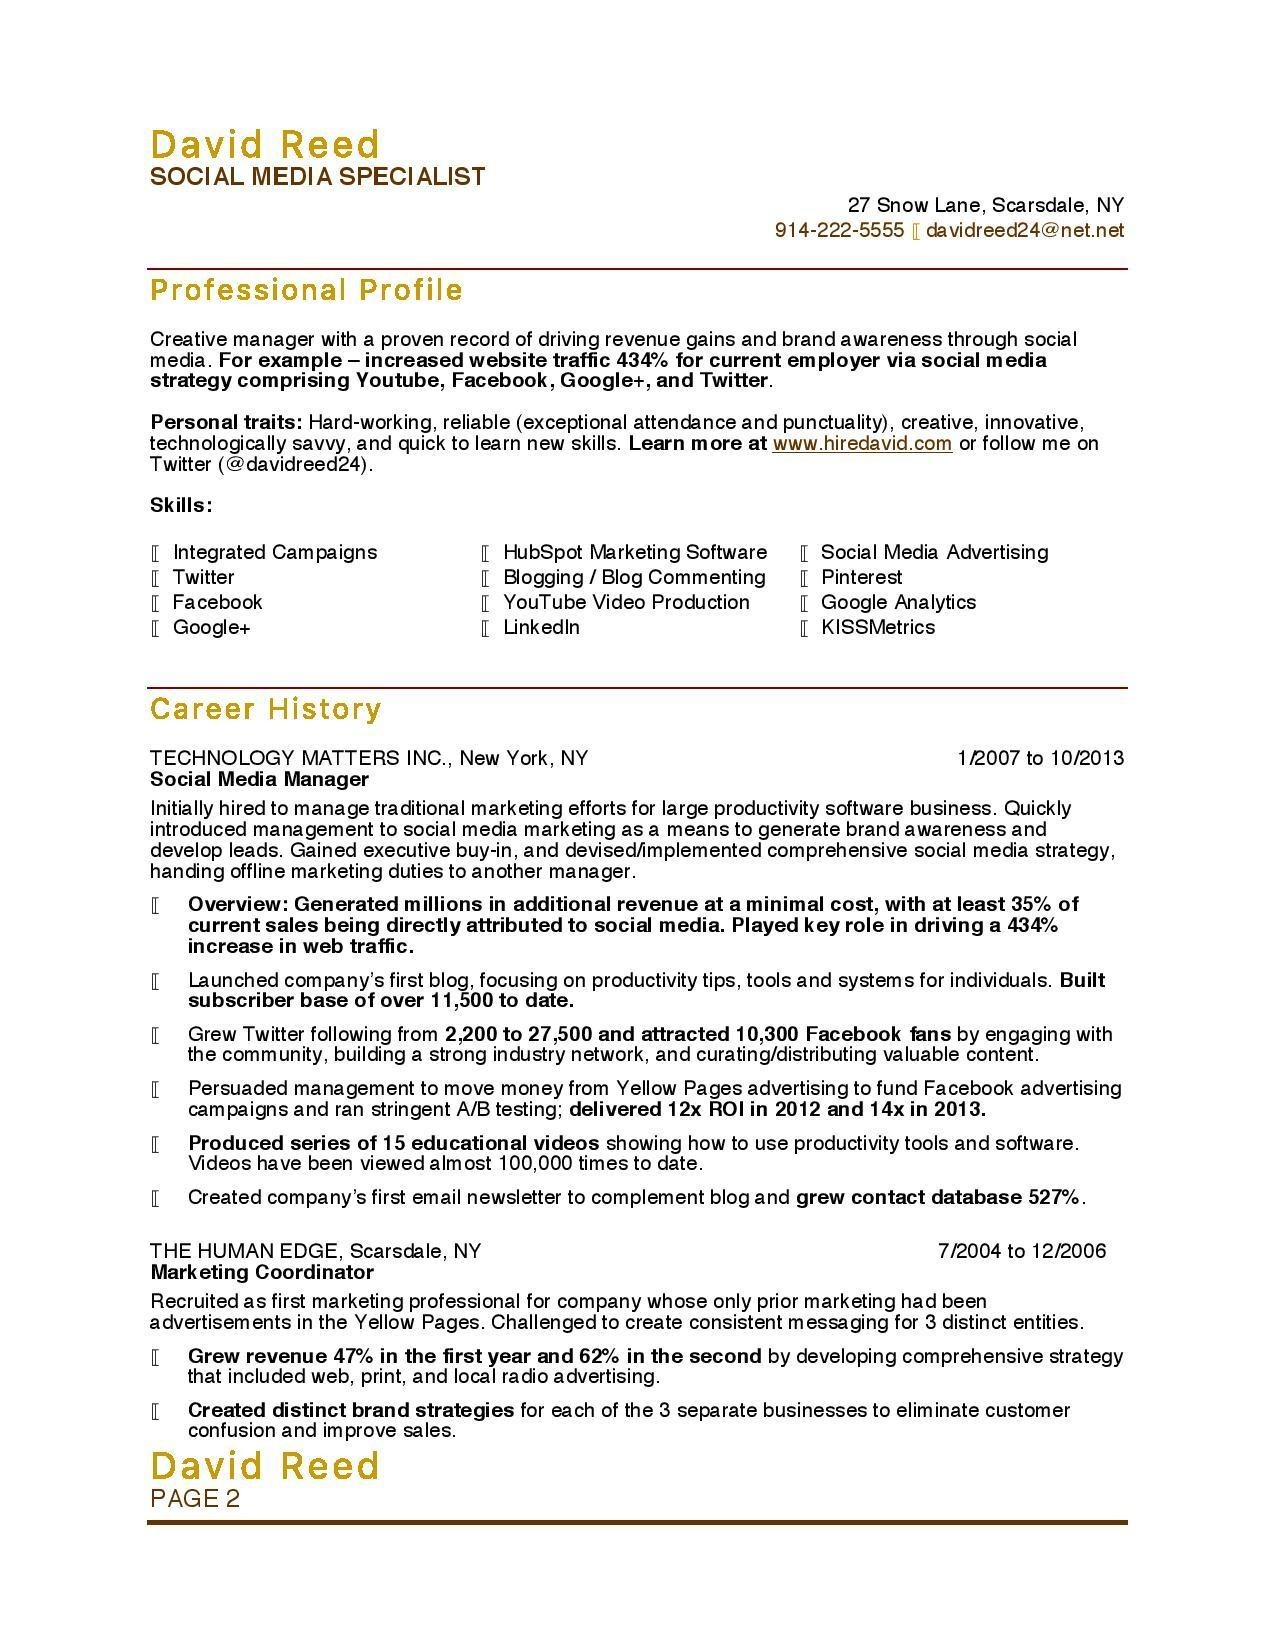 Social Media Specialist Resume - Marketing Resume Samples Luxury Luxury Grapher Resume Sample